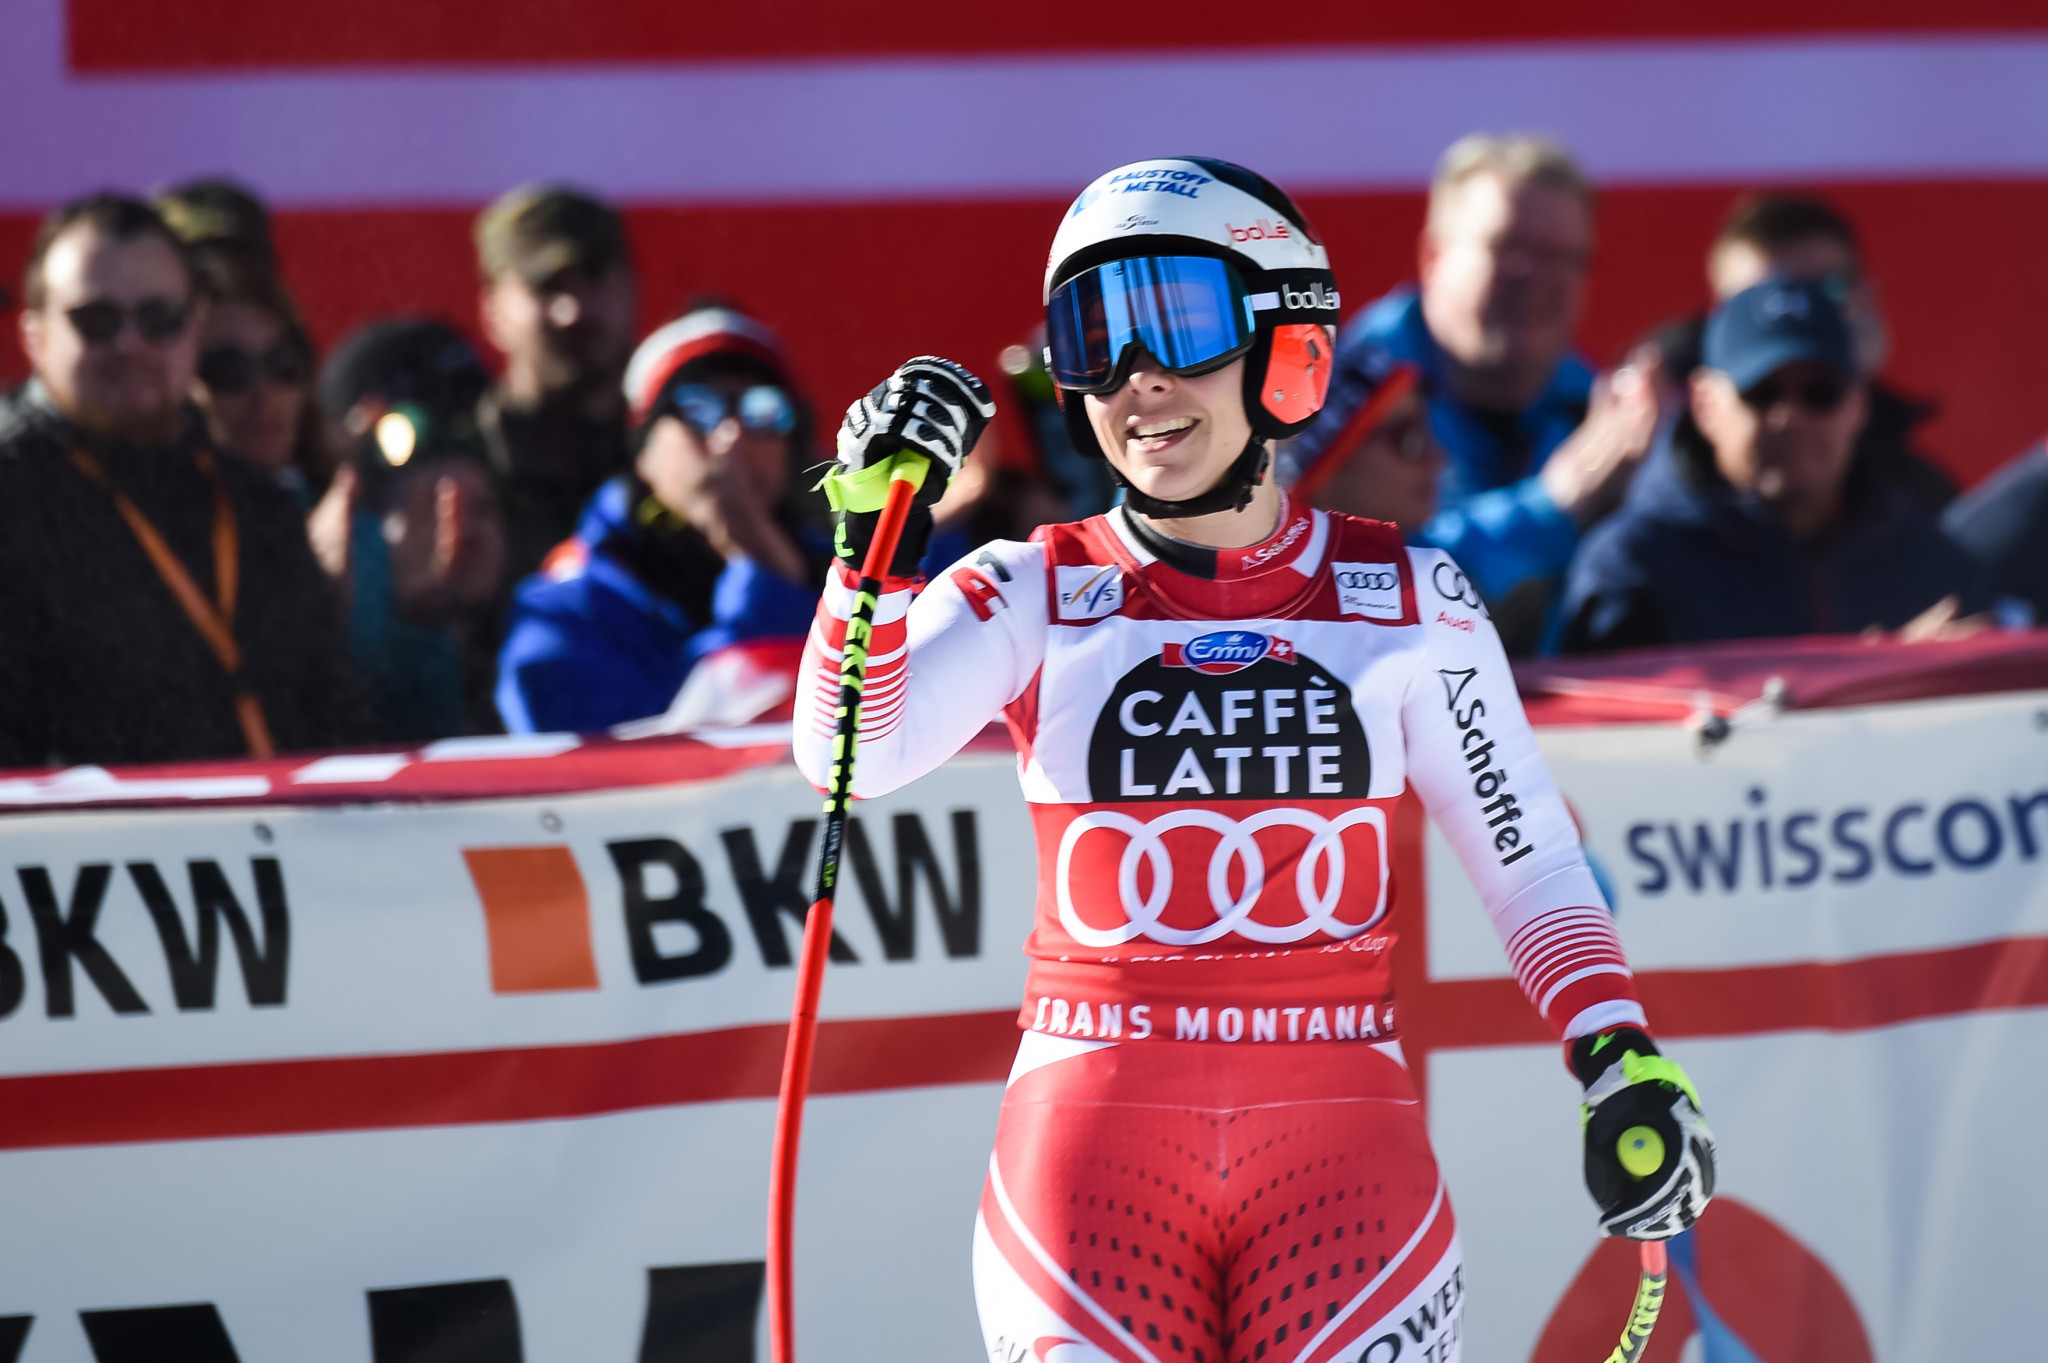 Nicole Schmidhofer missed out on a podium finish after a timing issue saw the result changed ©Getty Images